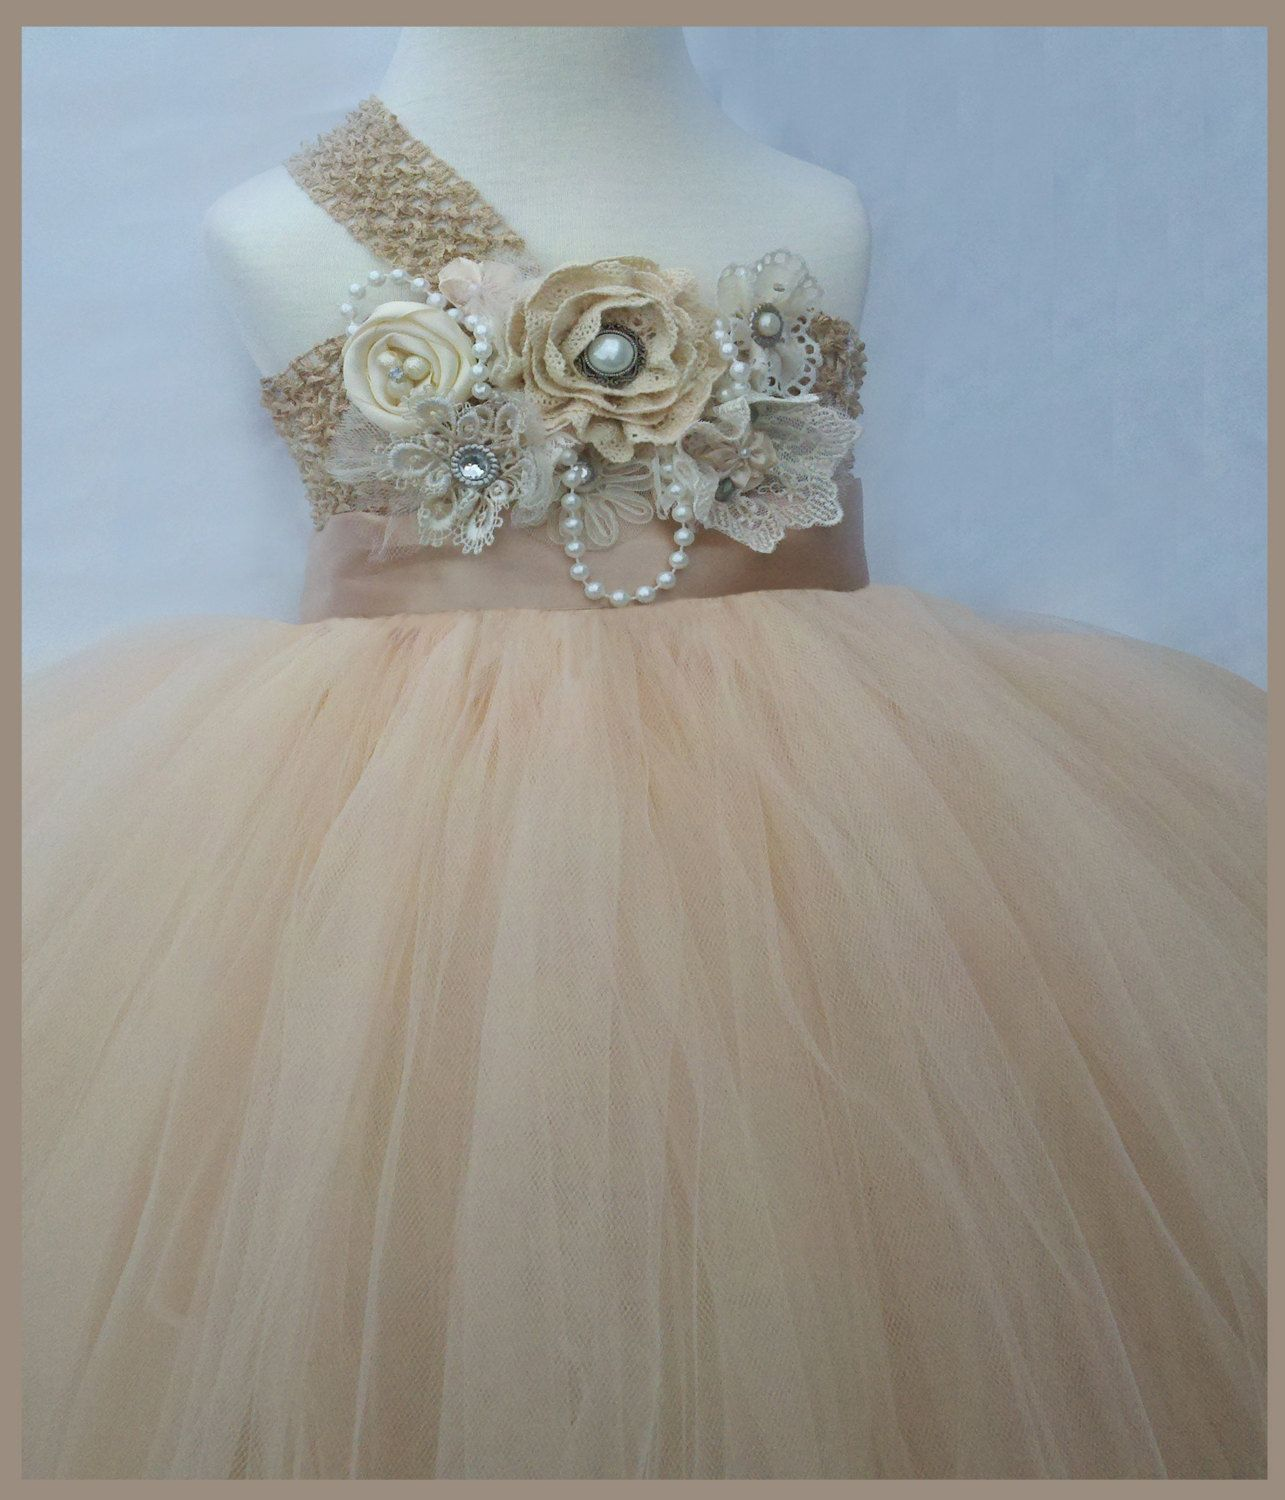 Dresses for 12 year olds for a wedding  flower girl dress Champagne flower girl tutu by Jillybeantutus